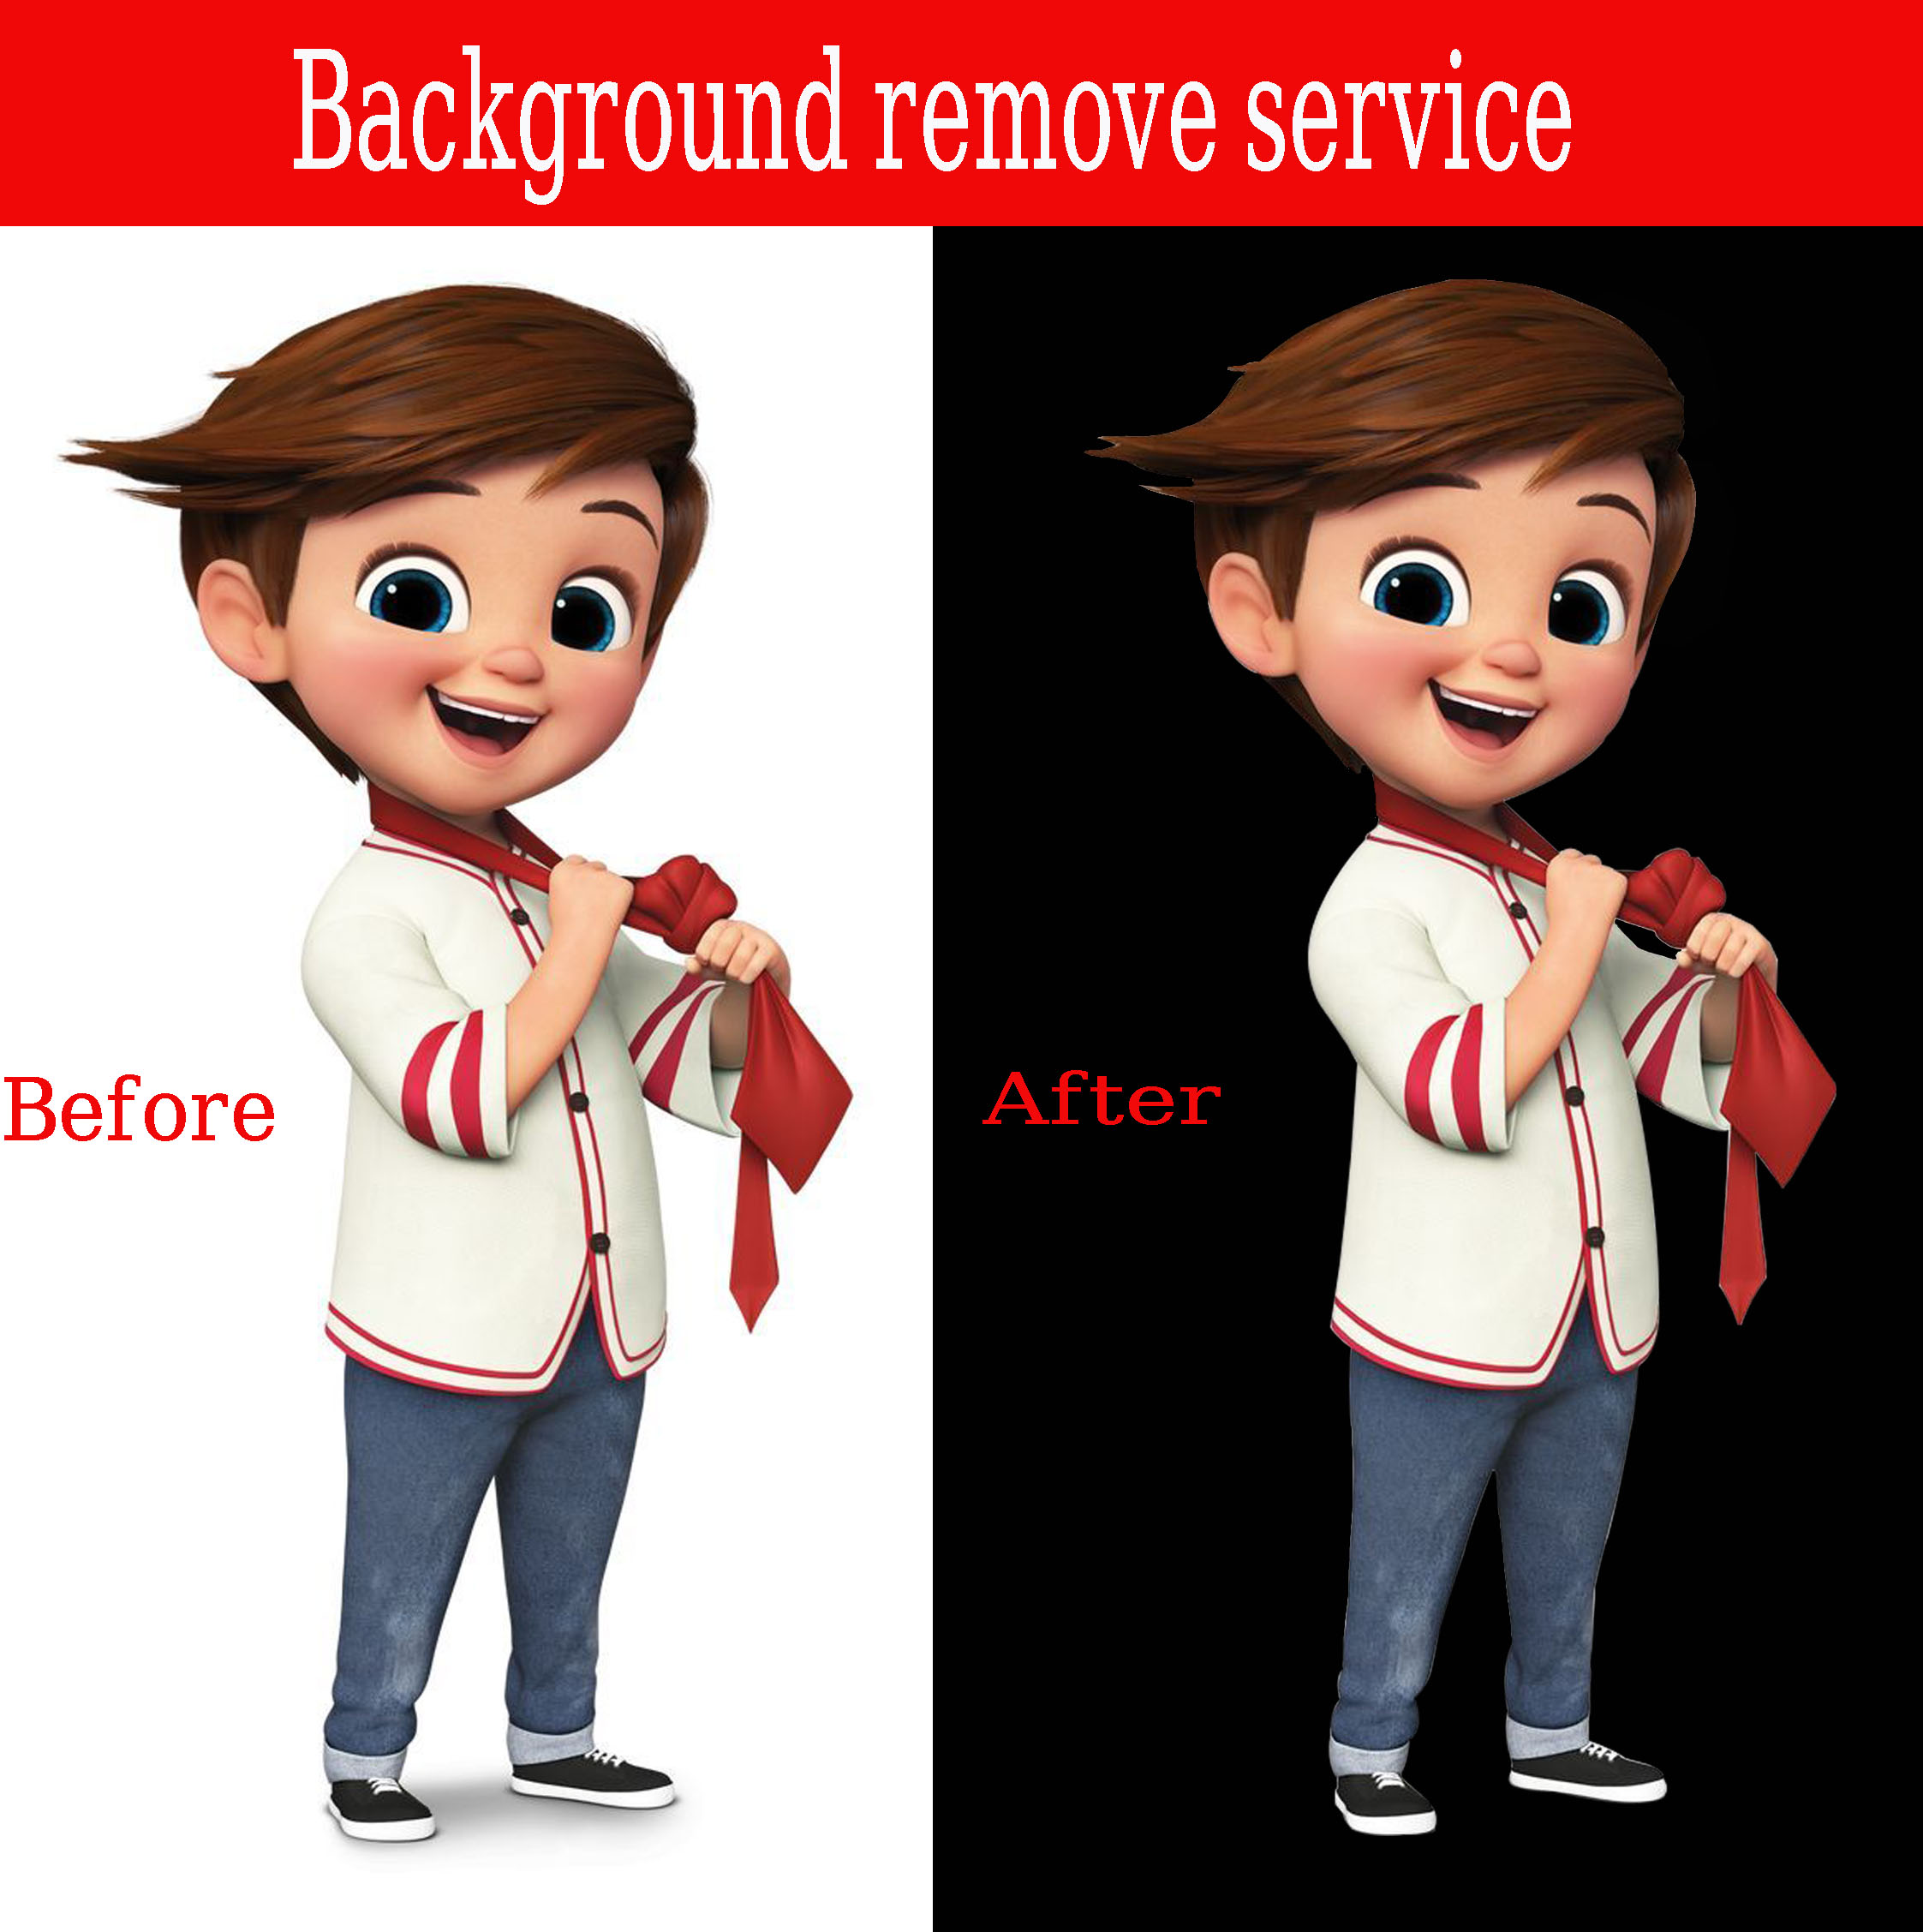 I will do background removal of images professionally and I will try my best.